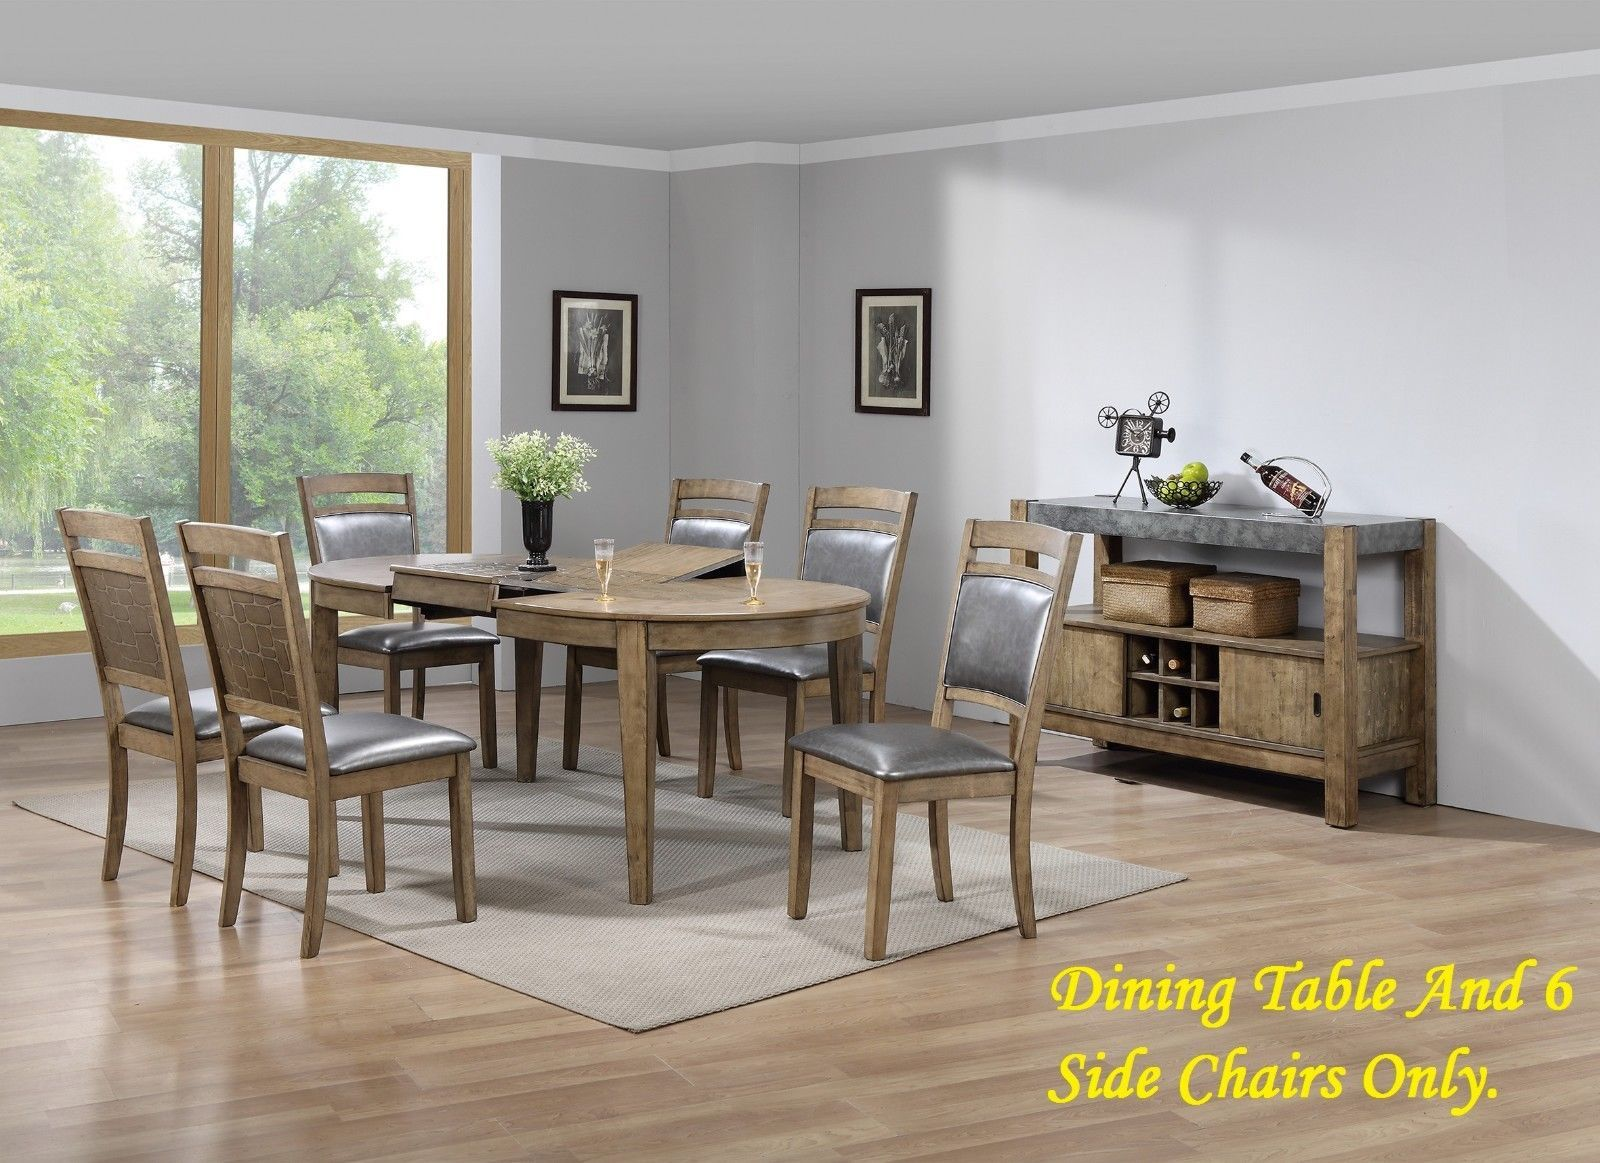 New Oval Top Dining Table Butterfly Leaf